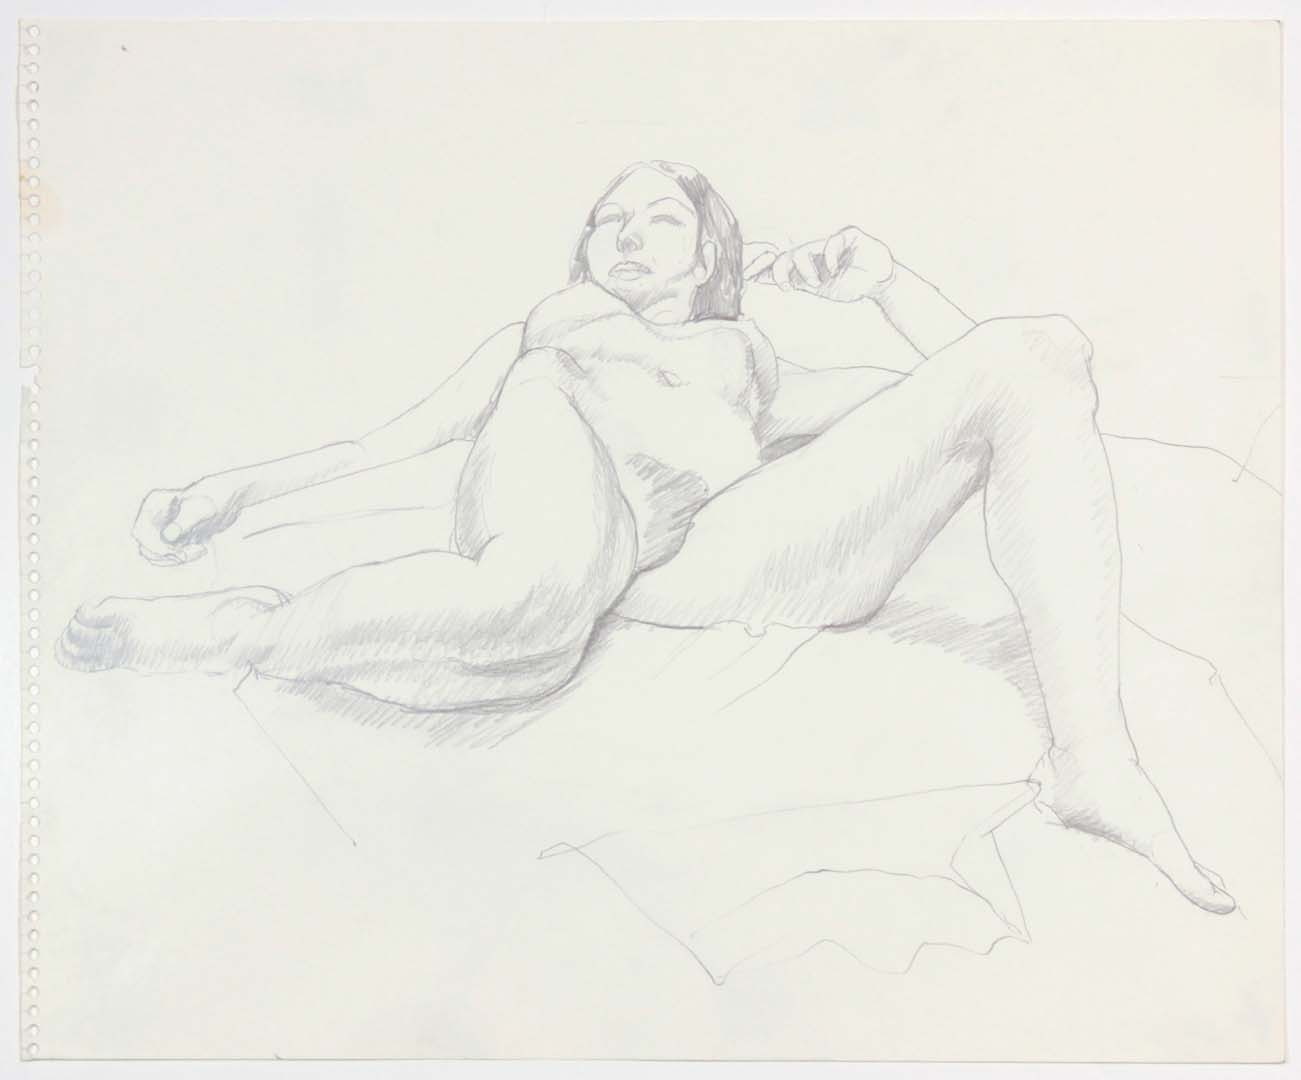 Reclined Female with Right Leg Bent Back Pencil 13.875 x 17